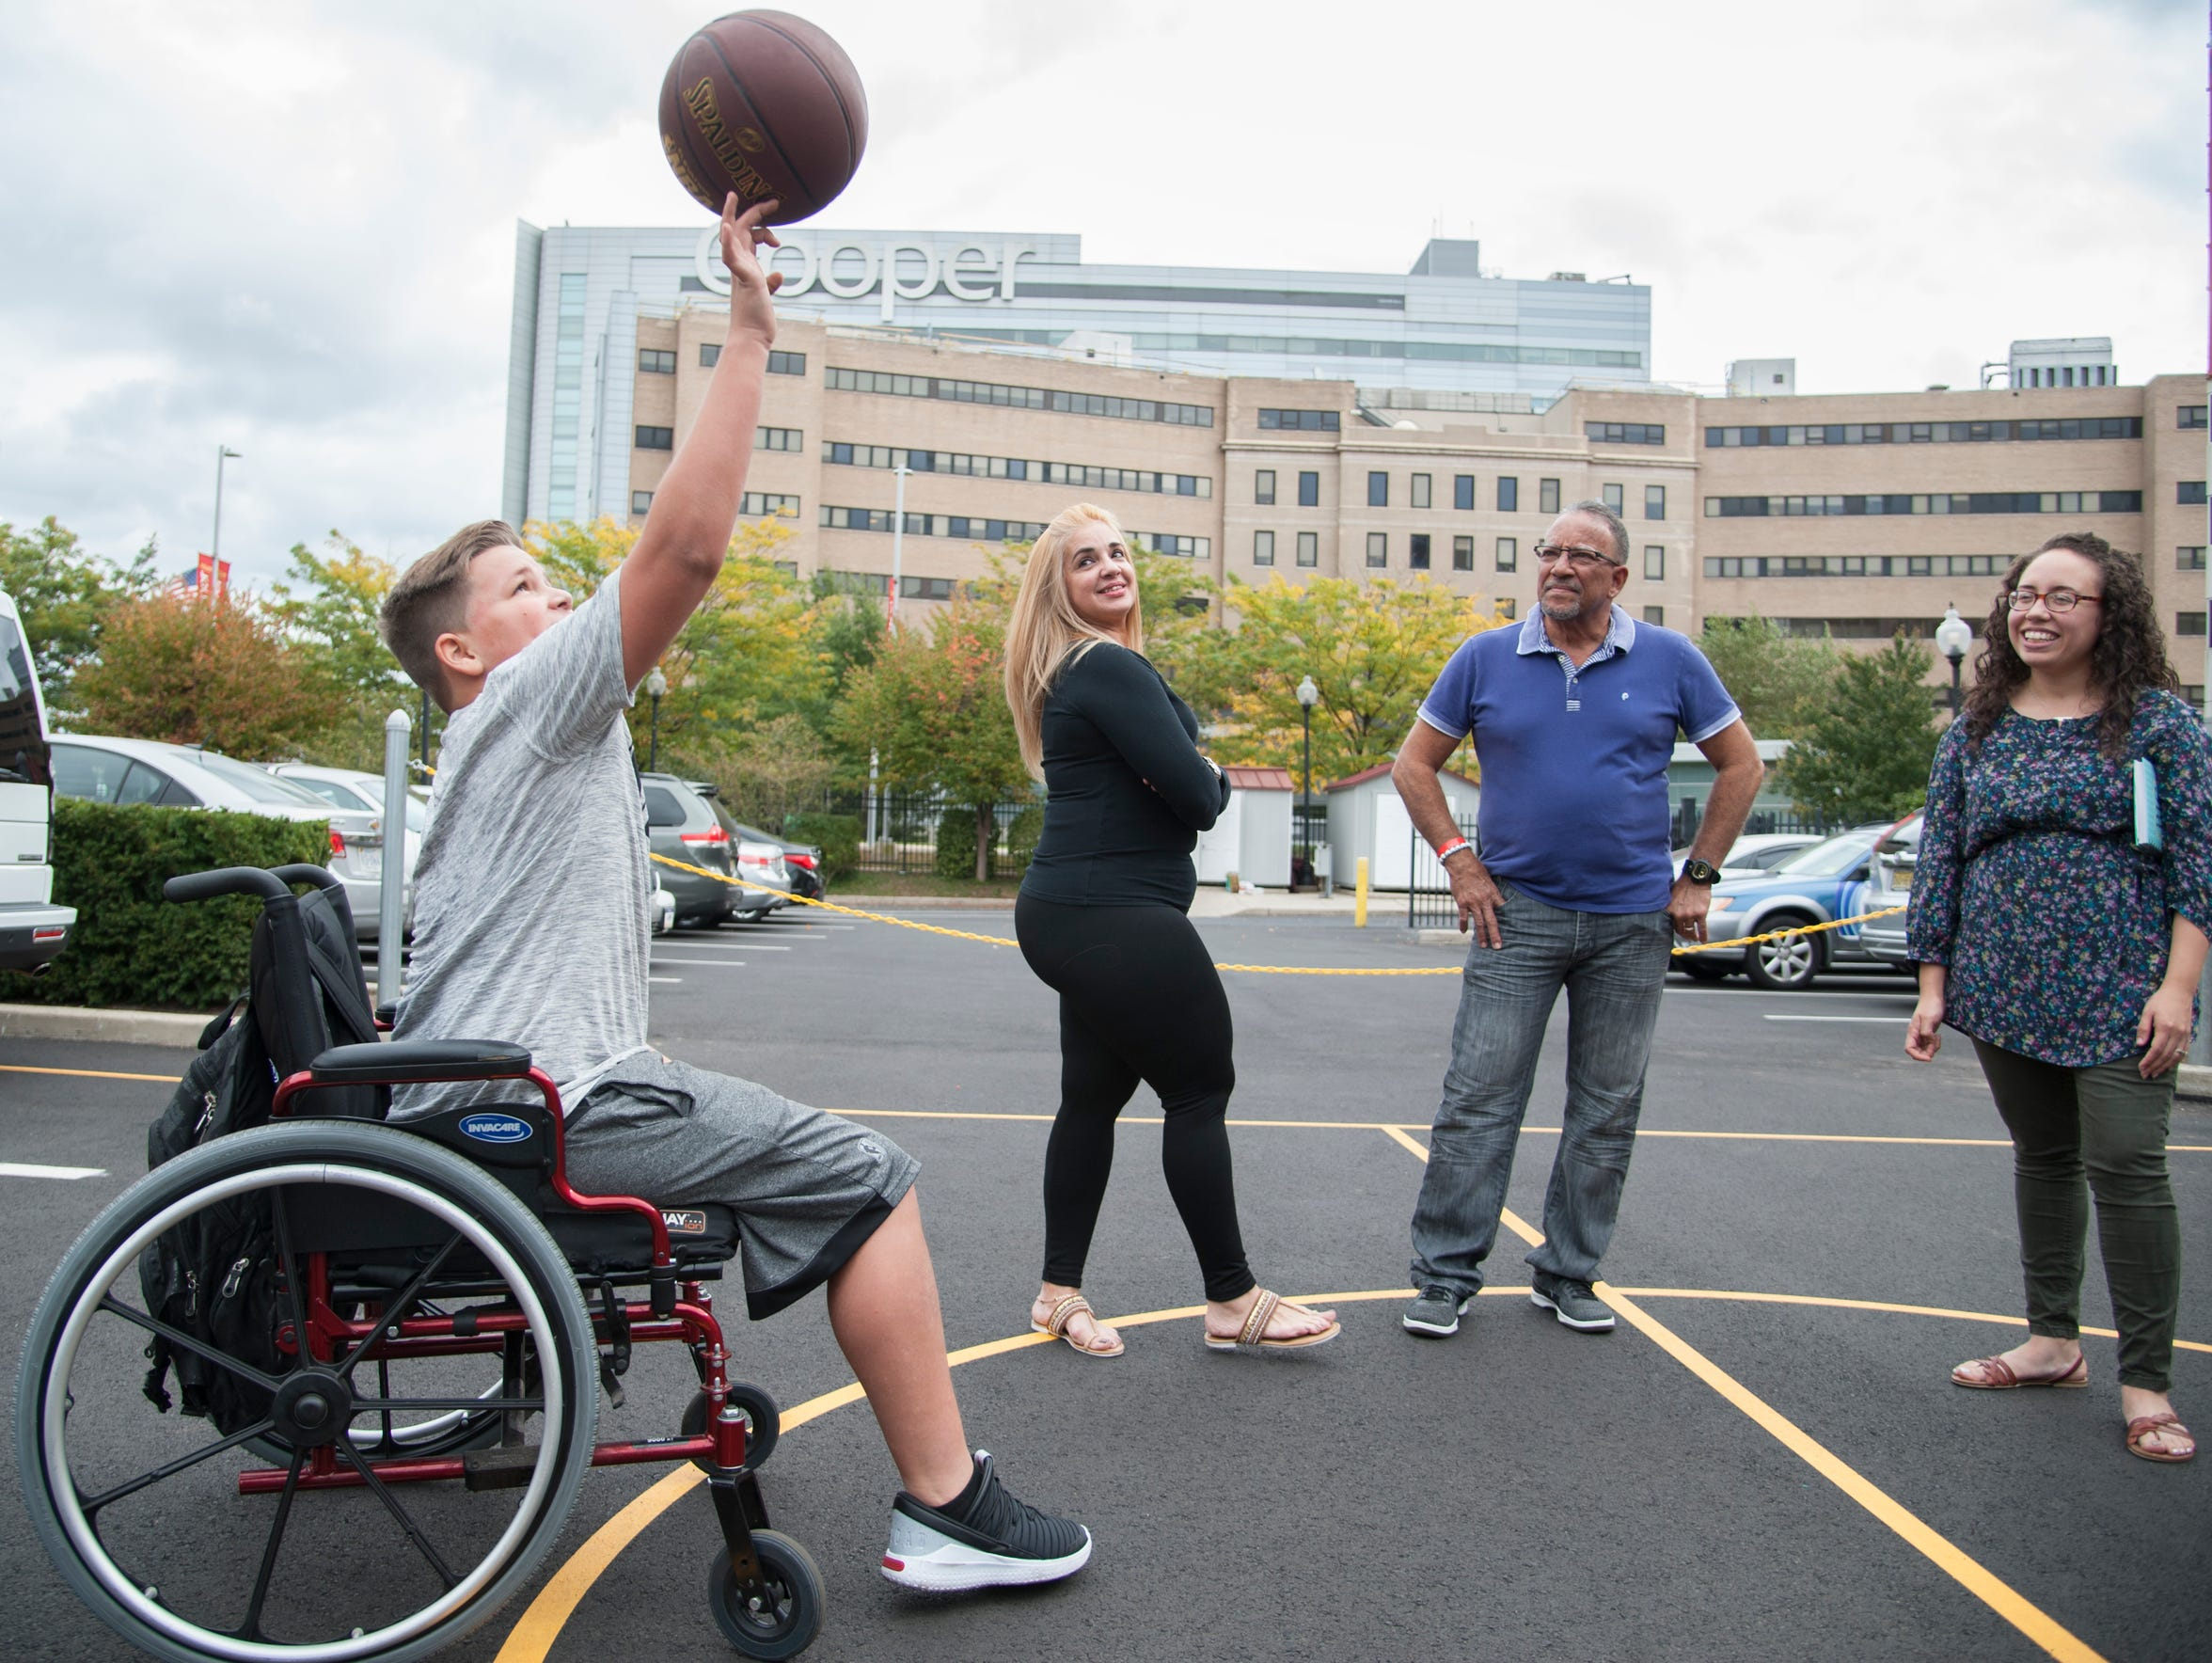 Luis Chiclana, 12 of Puerto Rico, spins a basketball